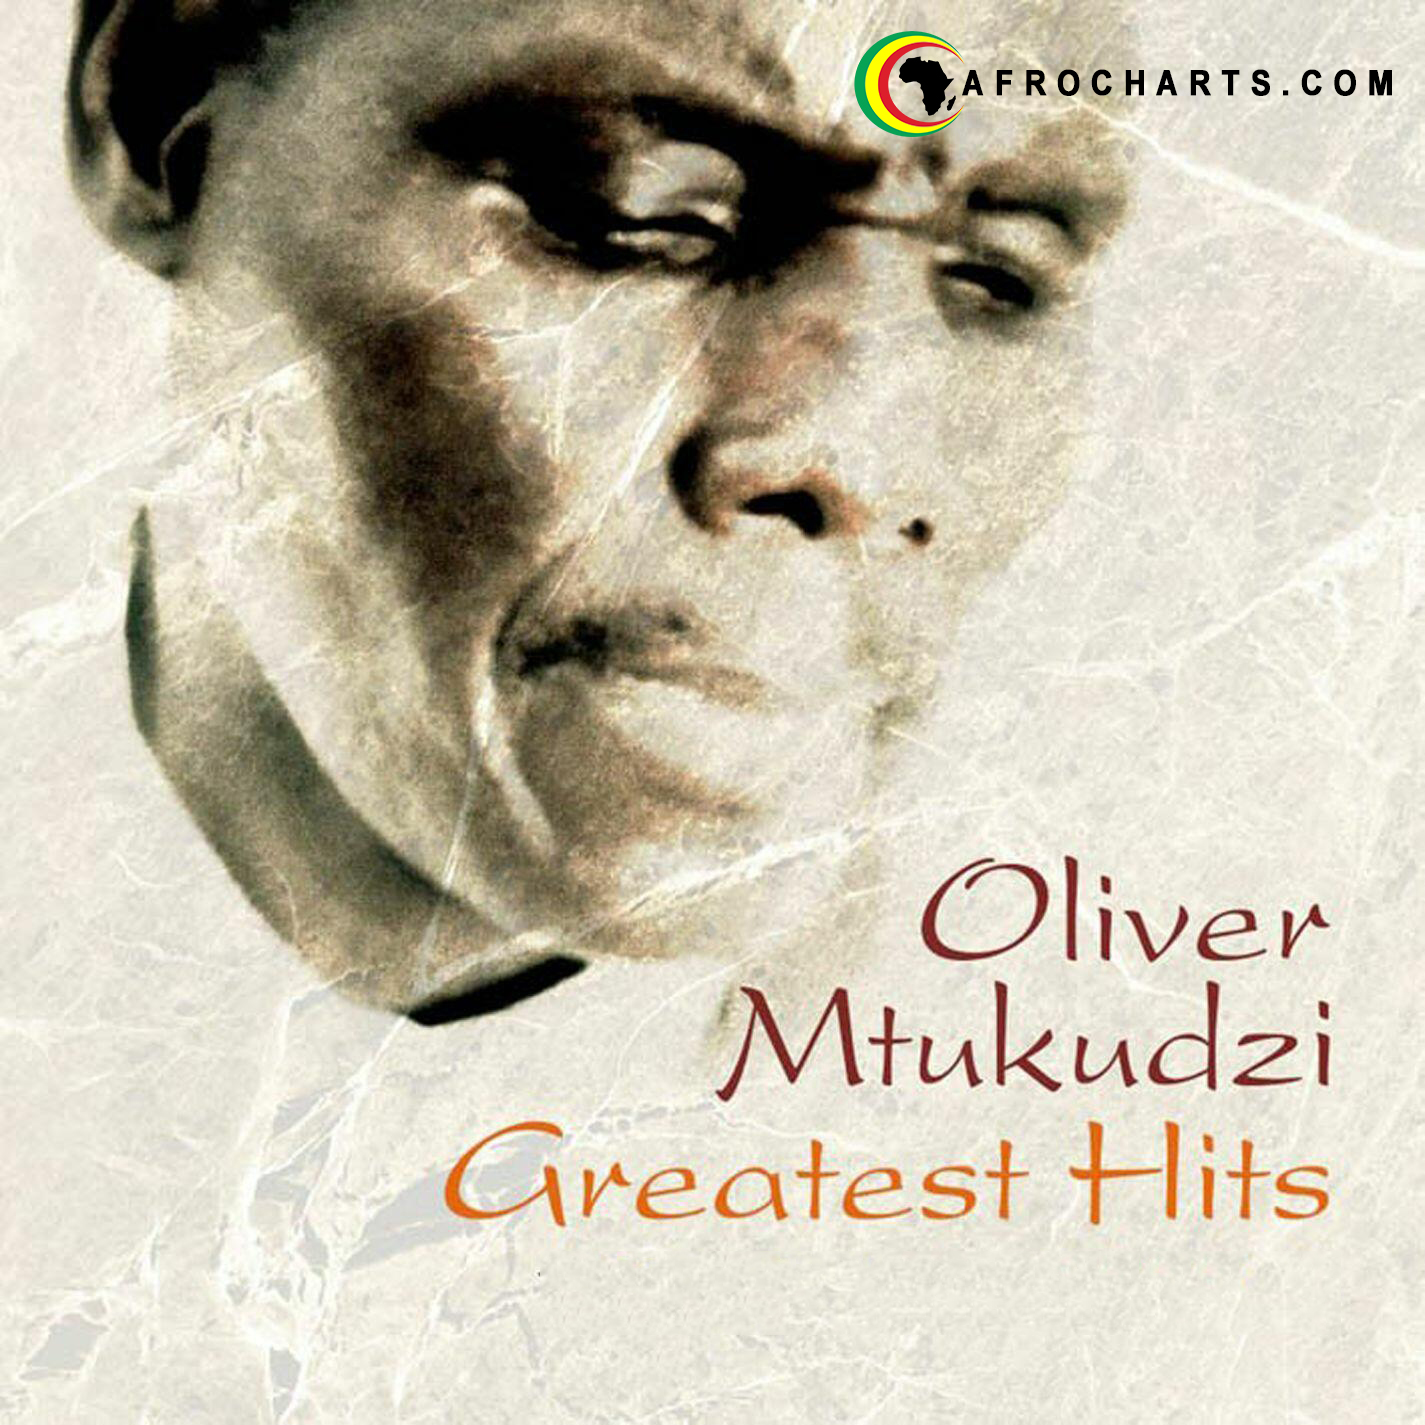 Oliver Mtukudzi Greatest Hits